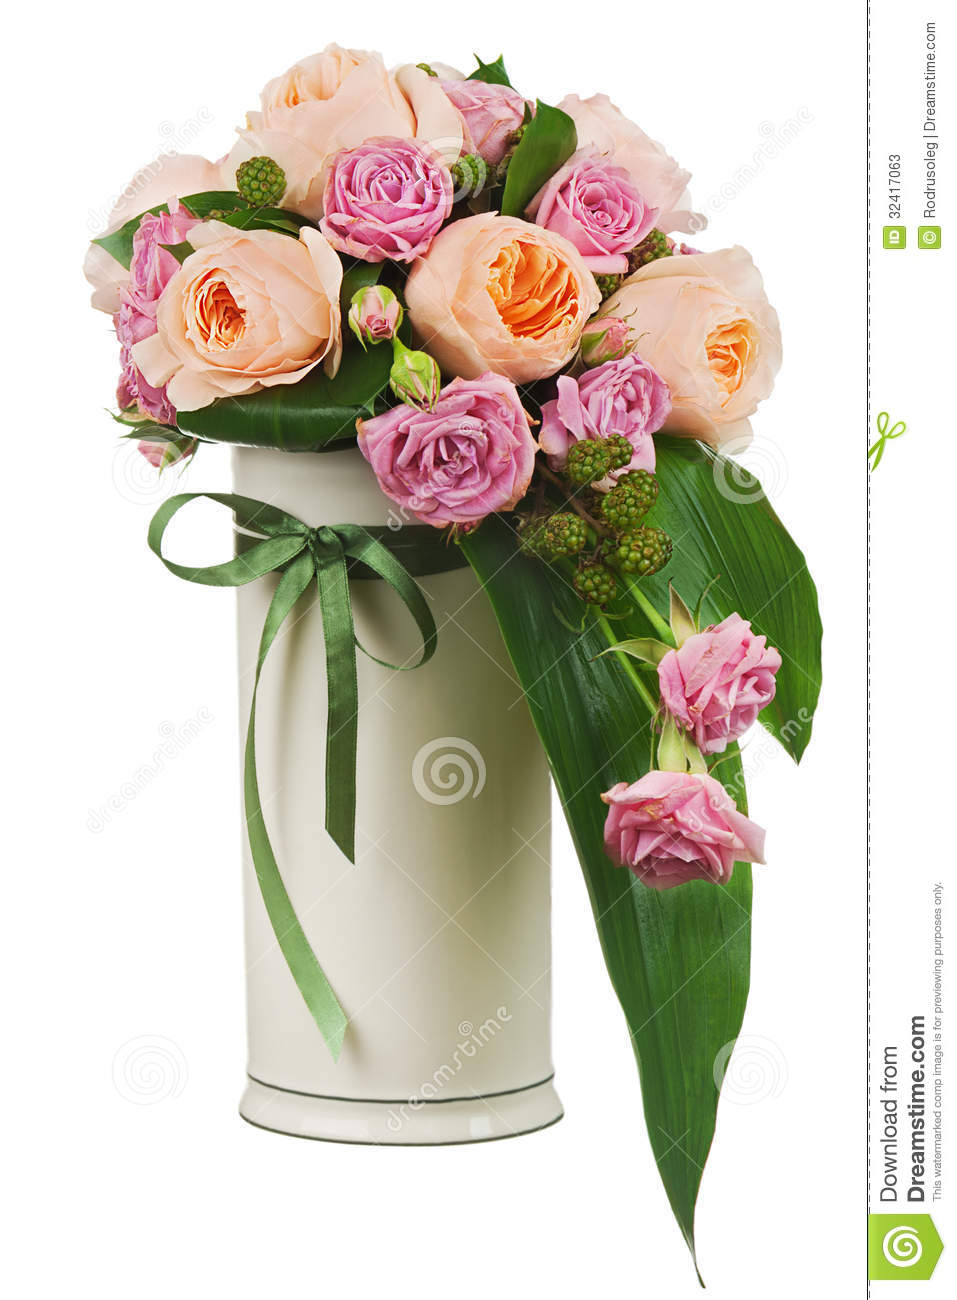 flower vase with flowers colorful flower bouquet from - Flower Vase